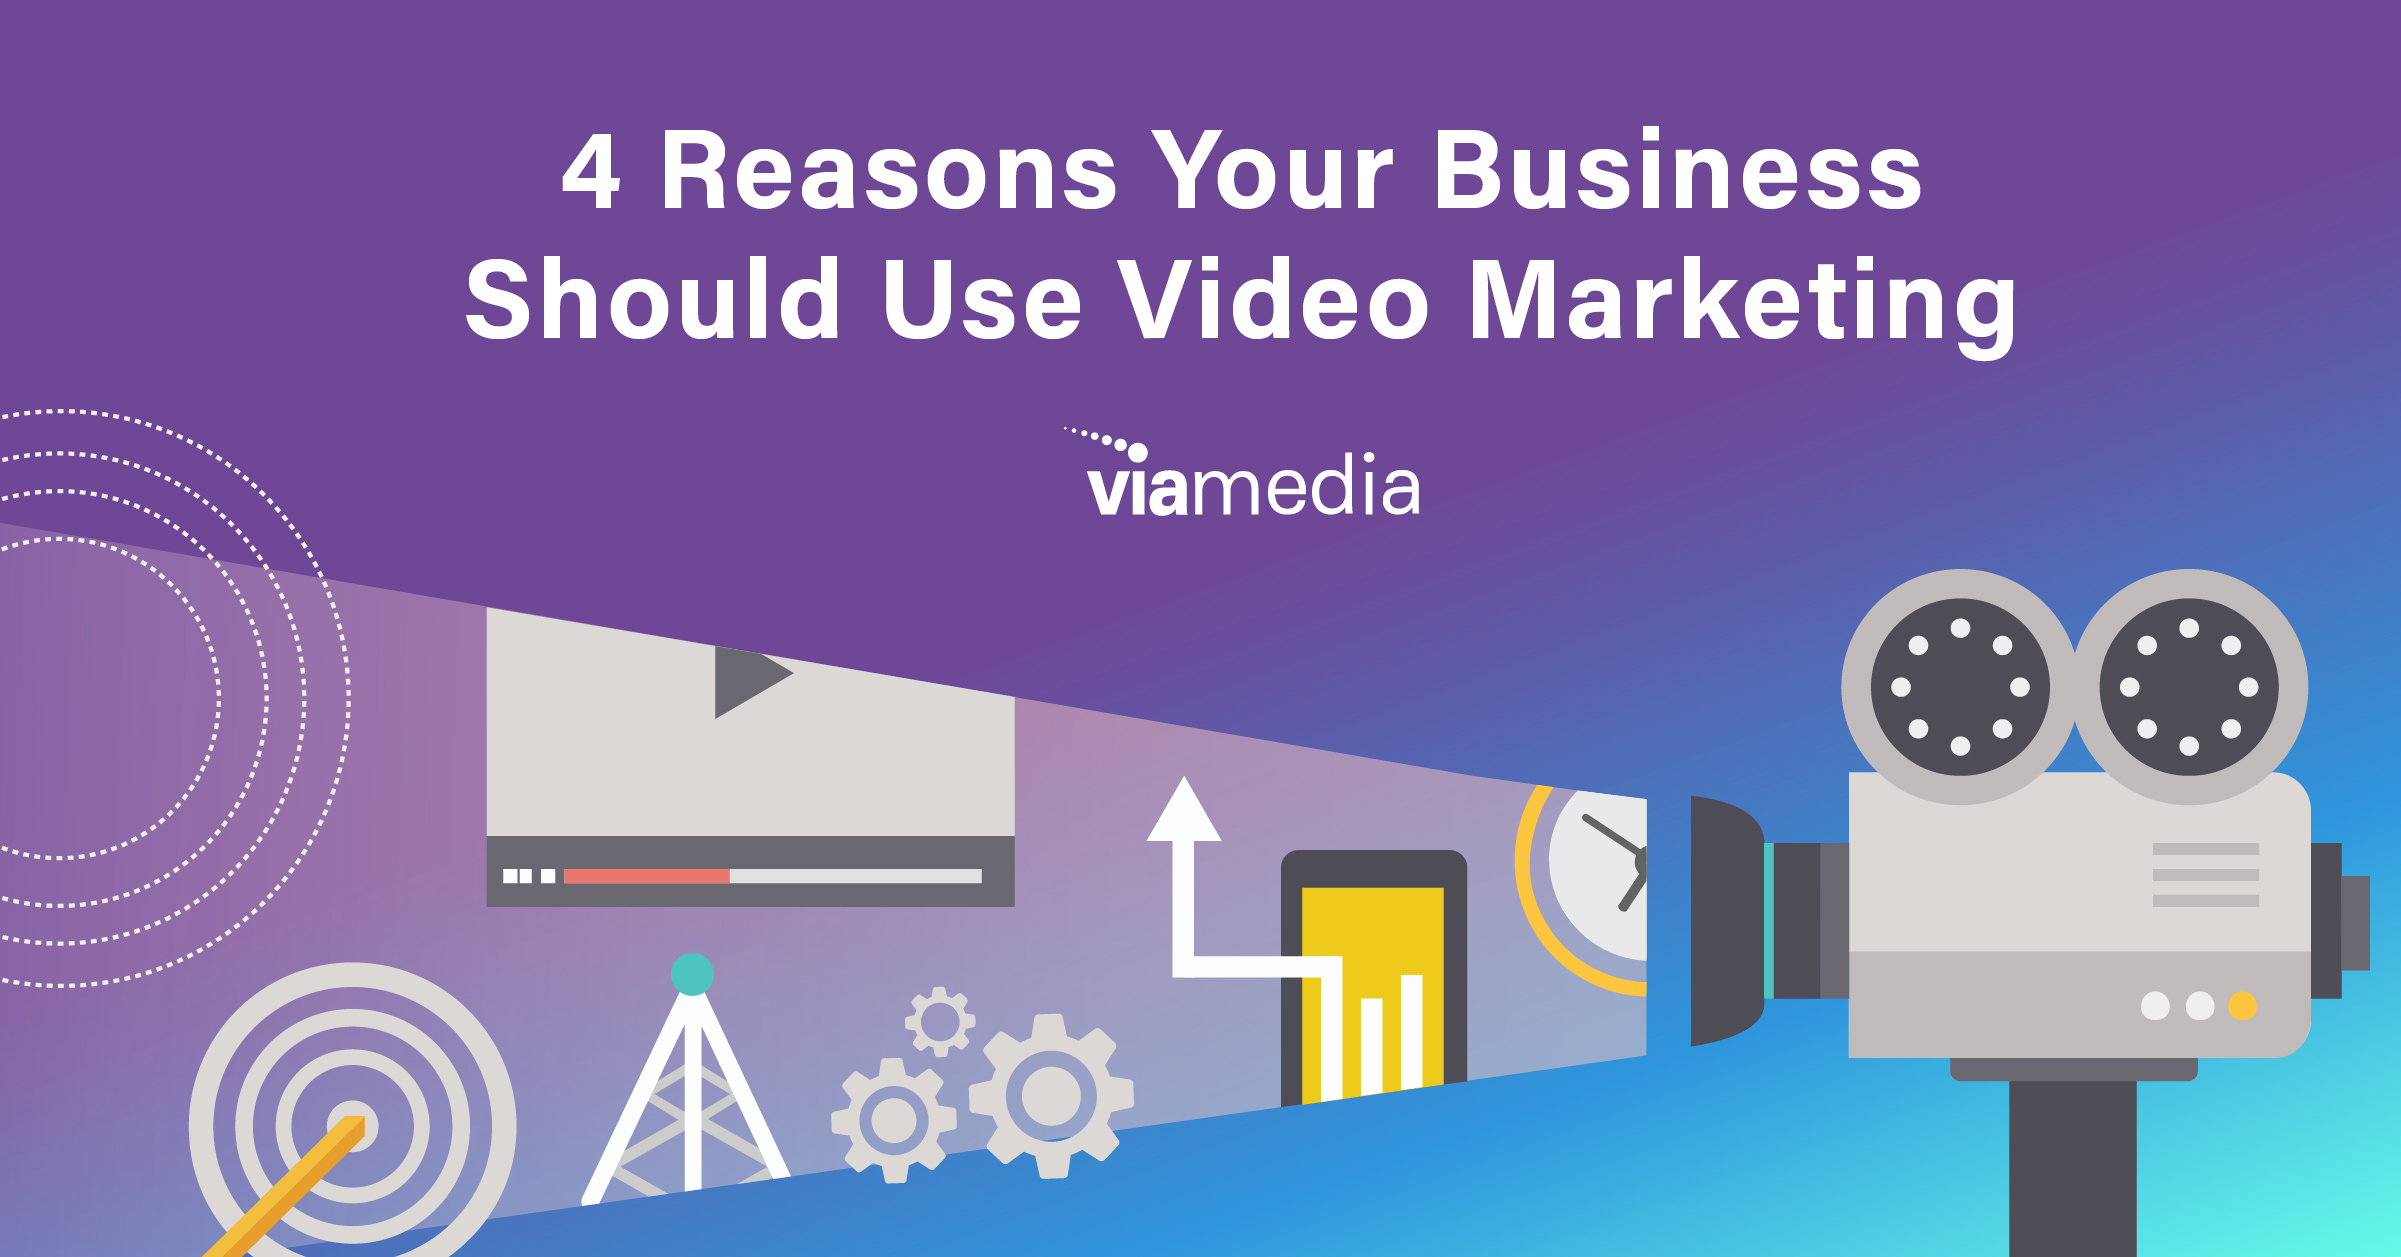 video marketing blog 2019 header-2